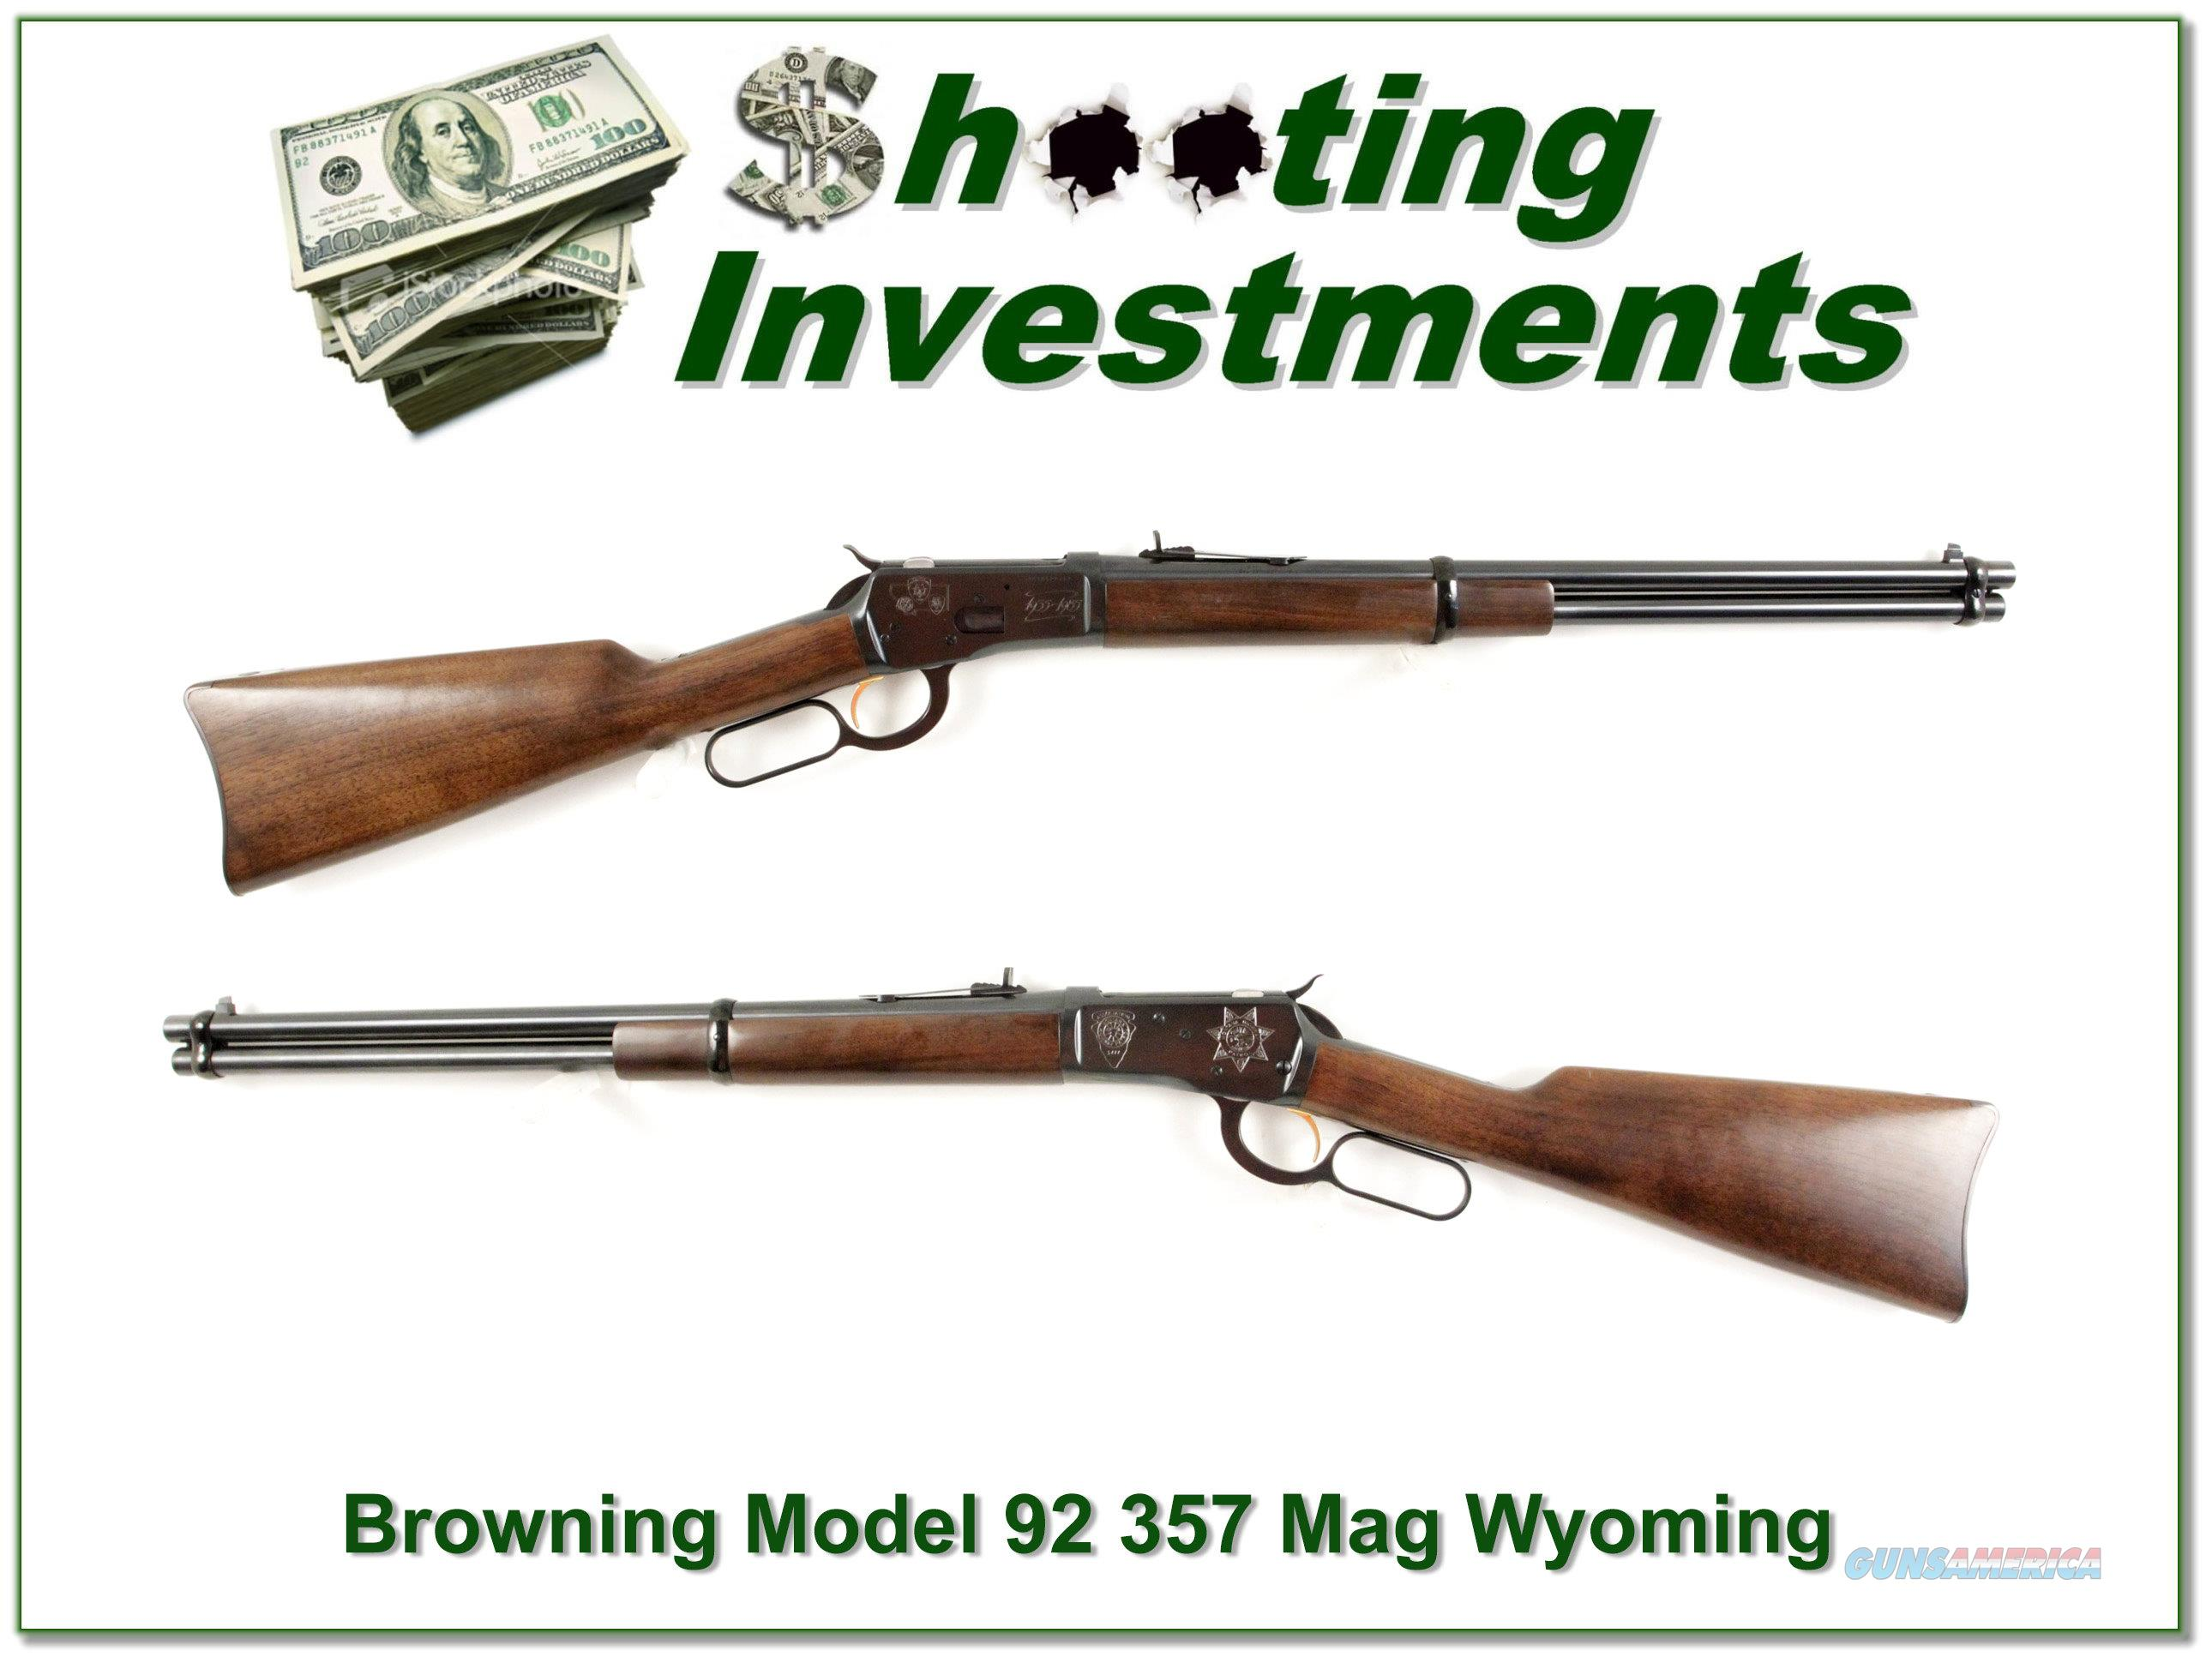 Browning Model 92 357 Magnum Montana Centennial unfired!  Guns > Rifles > Browning Rifles > Lever Action